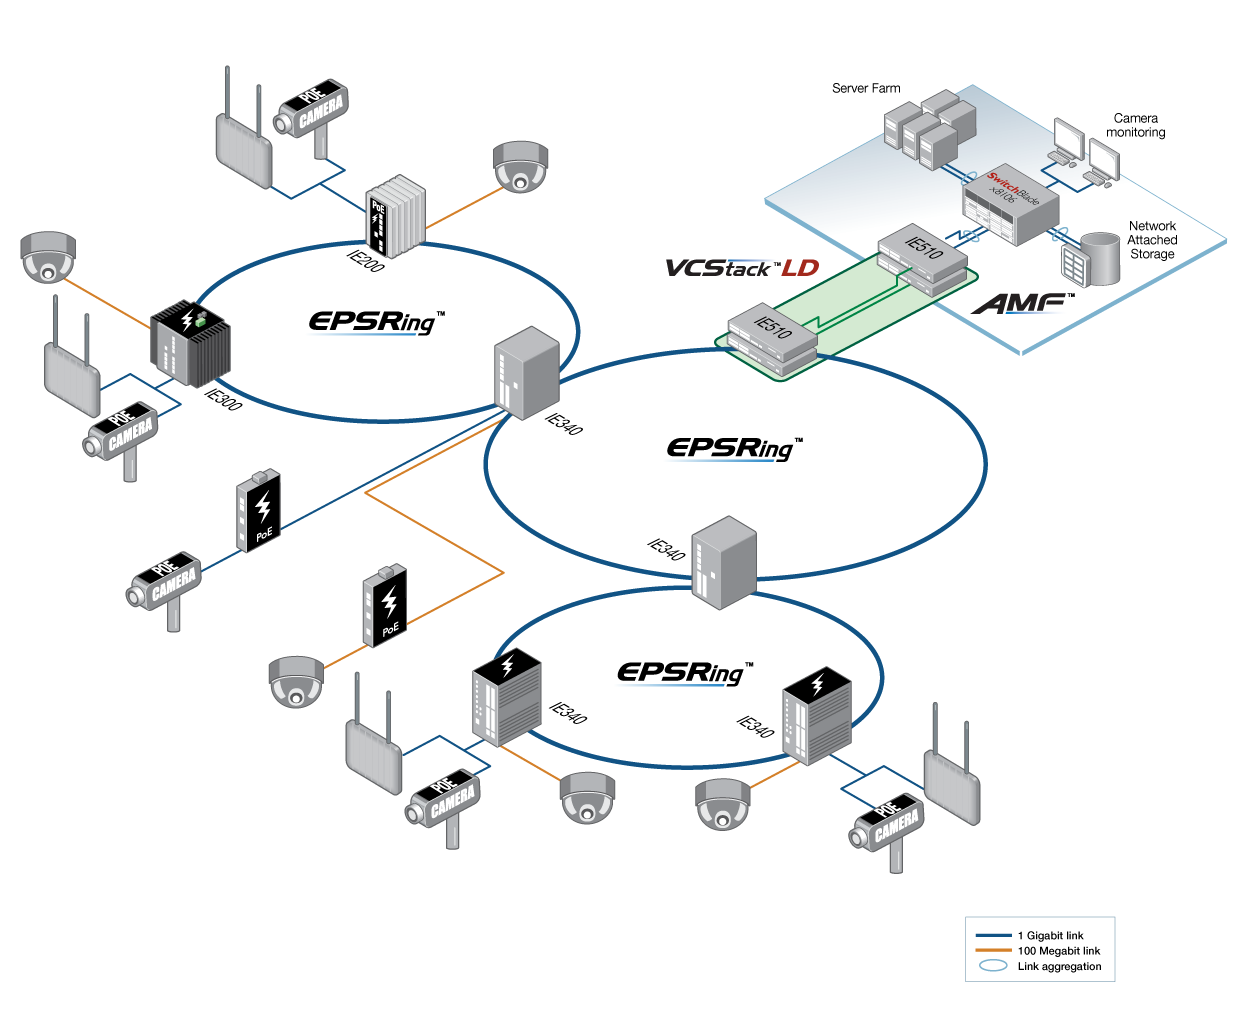 IE340 network